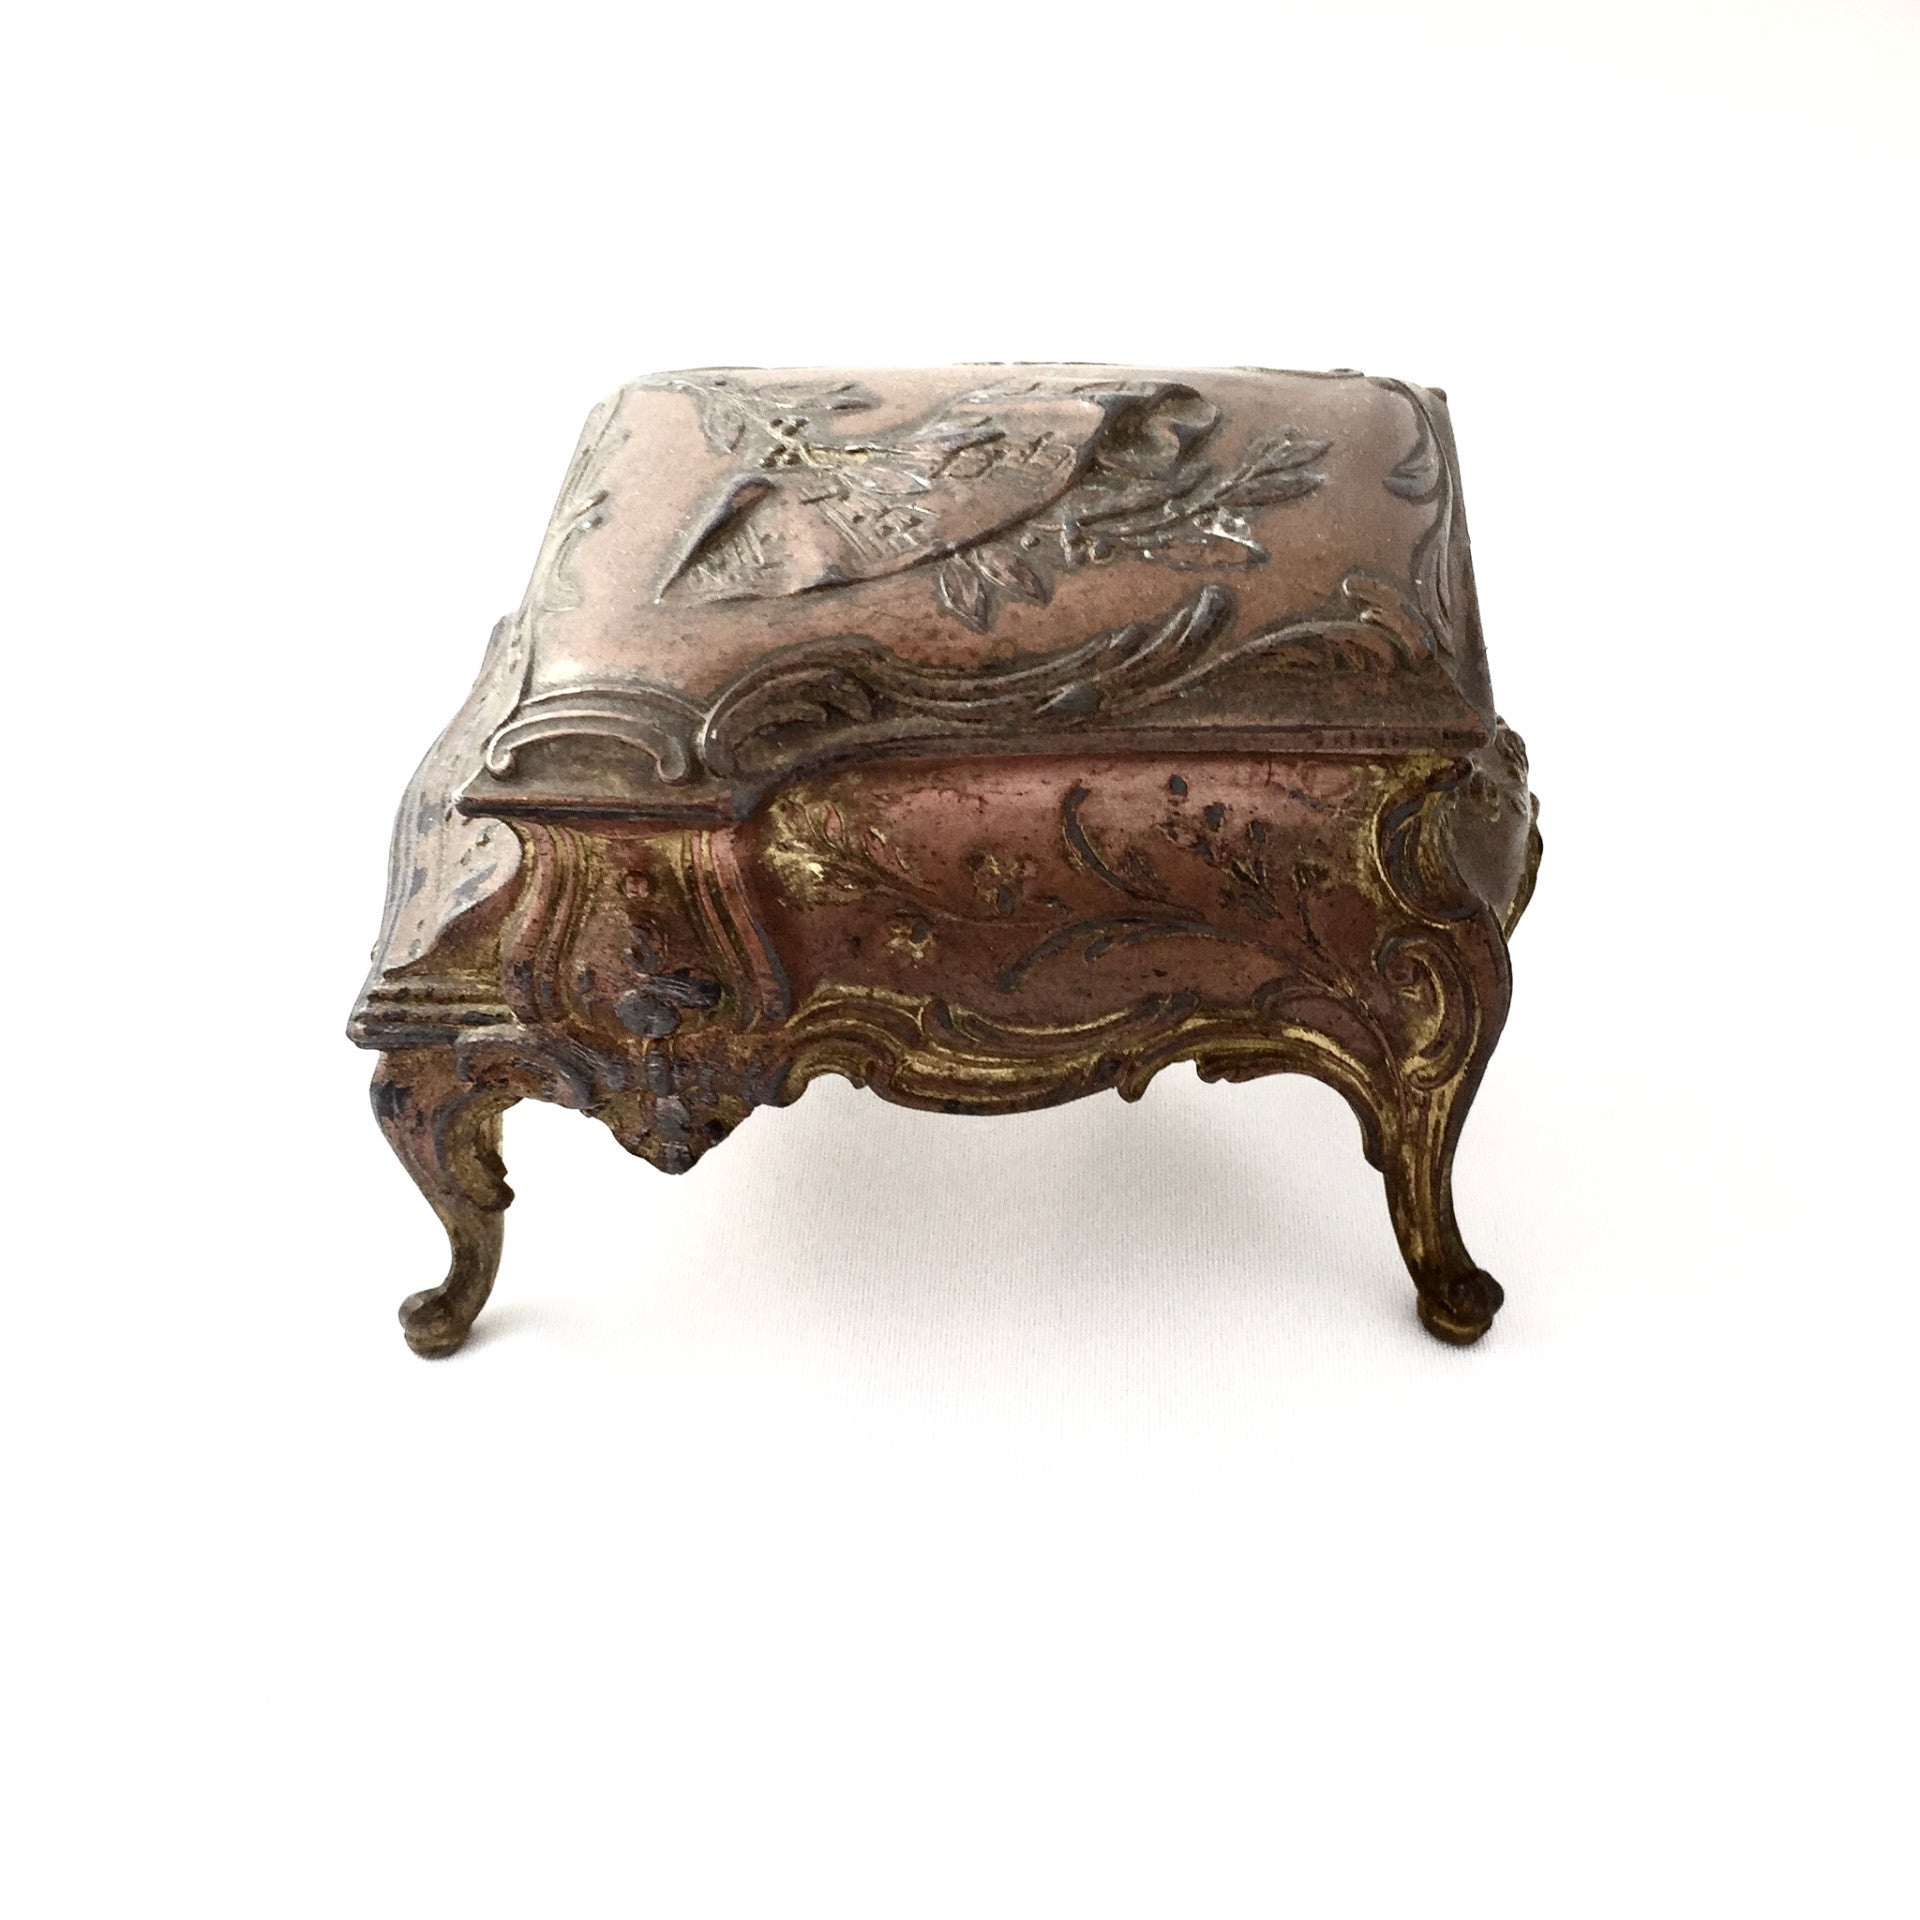 Antique French Trinket Box-Antiques-Antique French-Putti Fine Furnishings